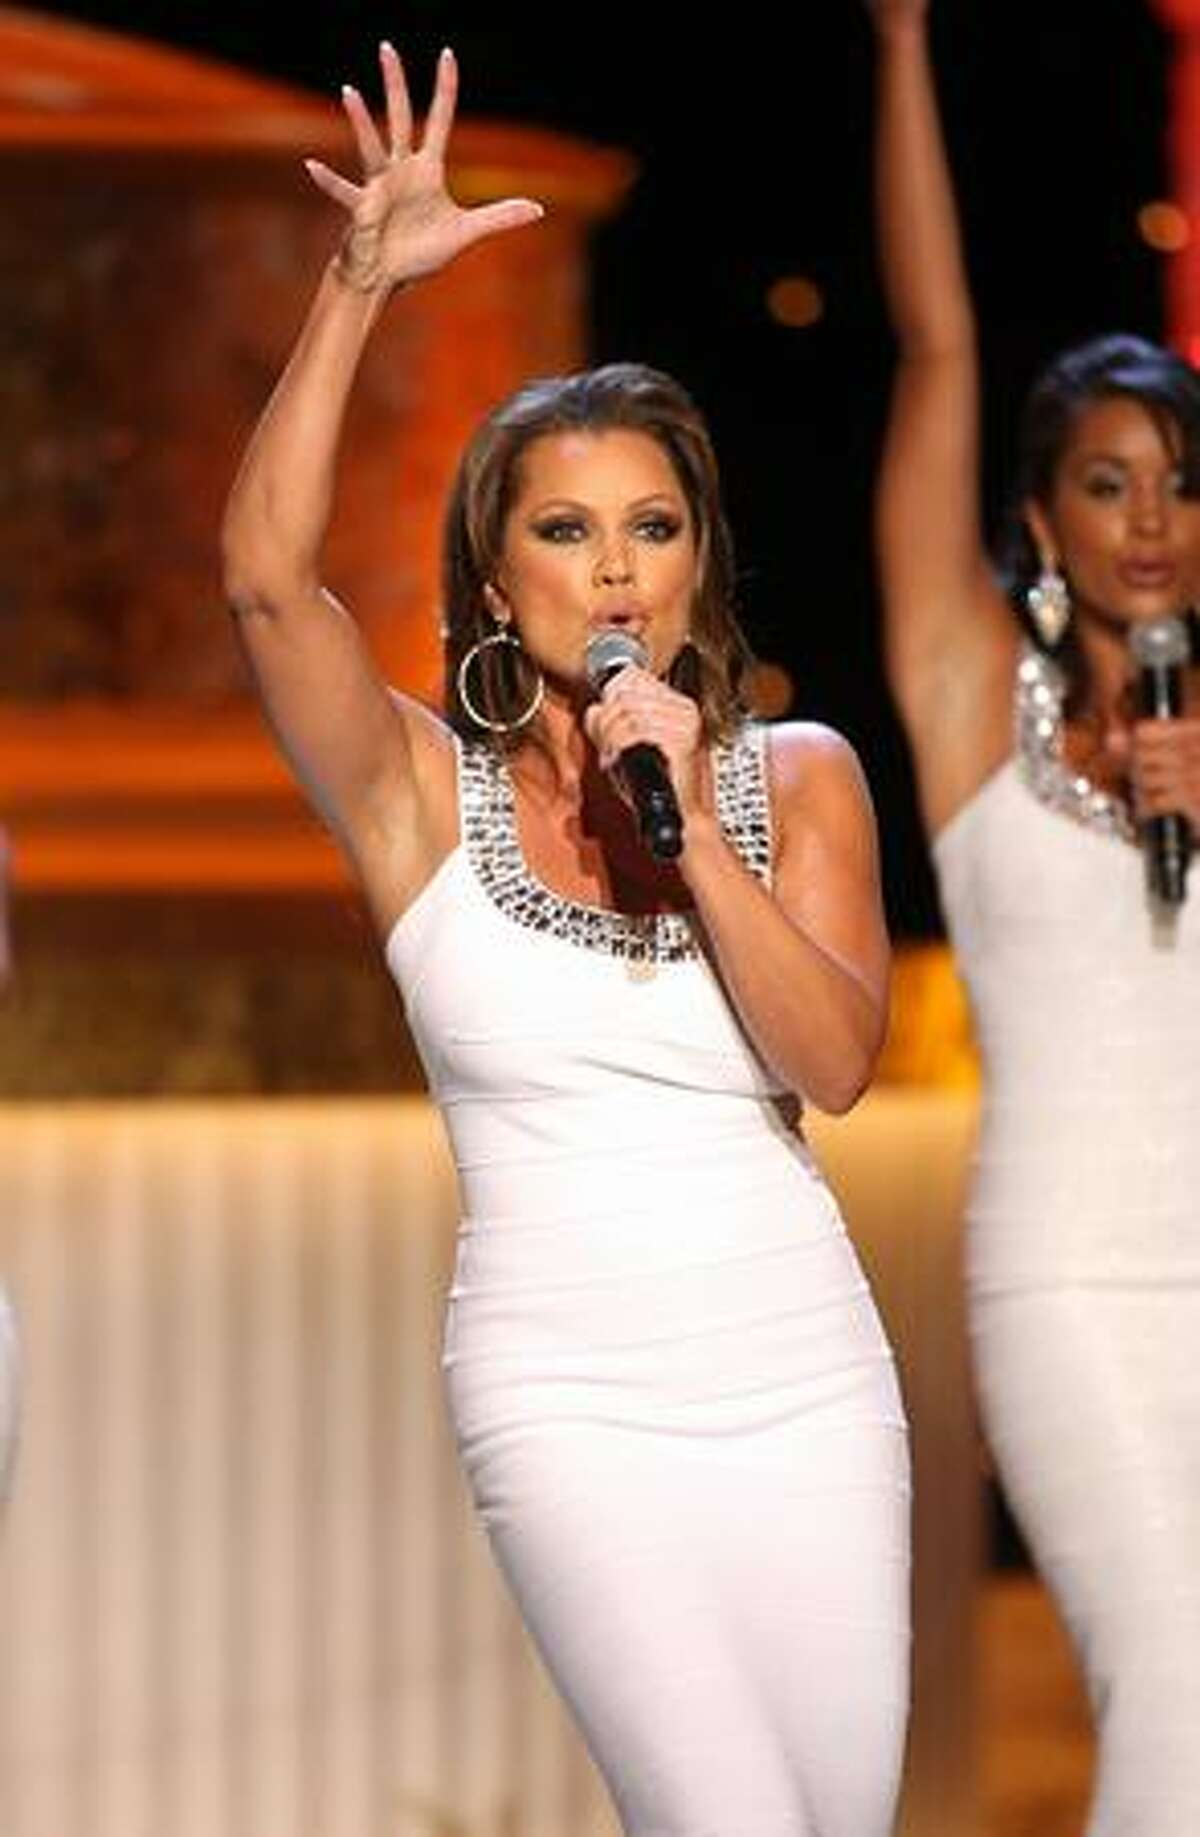 Host Vanessa Williams performs during the 36th Annual Daytime Emmy Awards at The Orpheum Theatre on Sunday in Los Angeles, Calif.